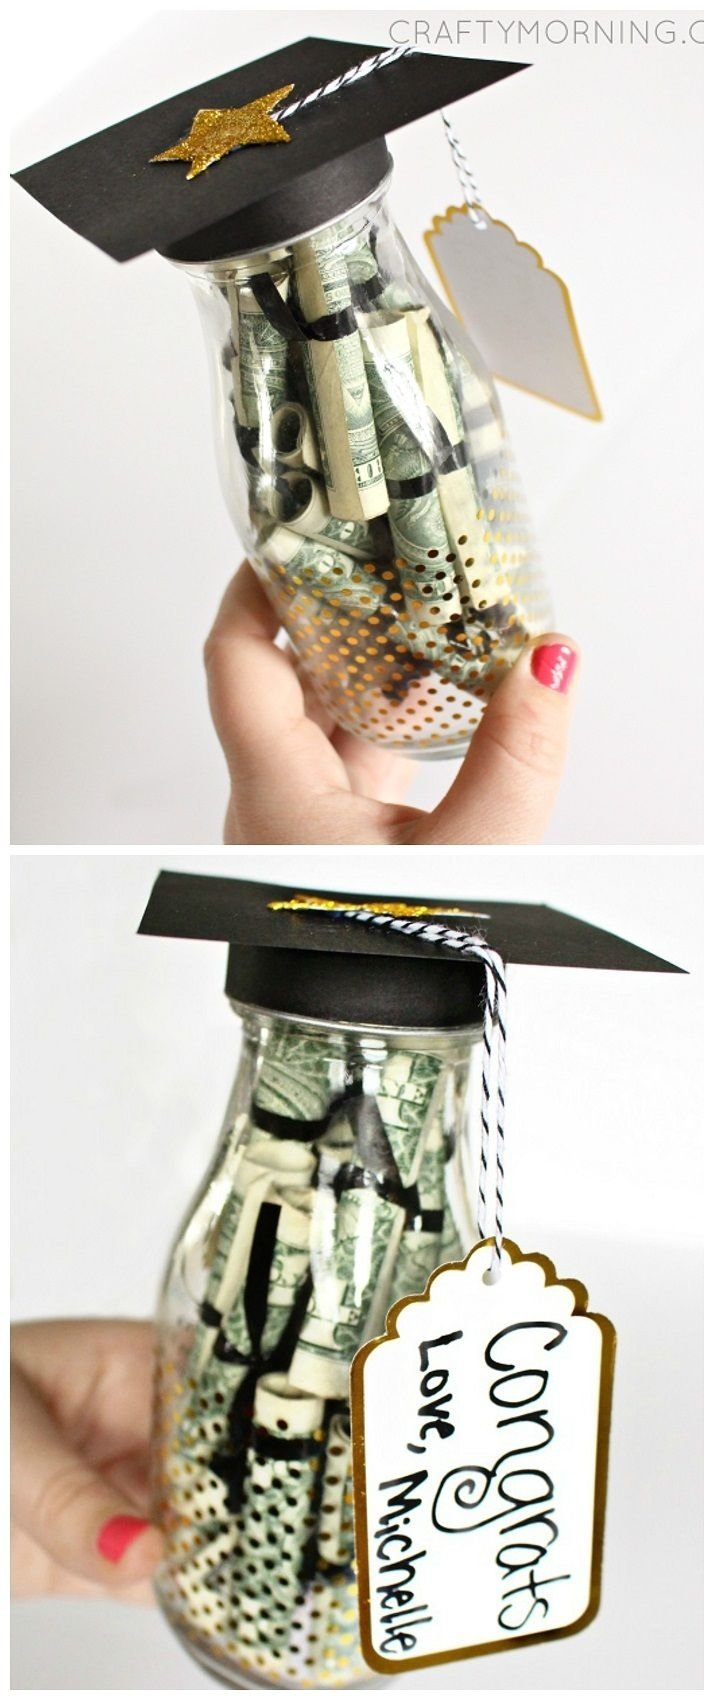 10 Most Popular High School Graduation Gift Ideas For Him graduation glass bottle gift dollar bill diplomas perfect for 22 2020